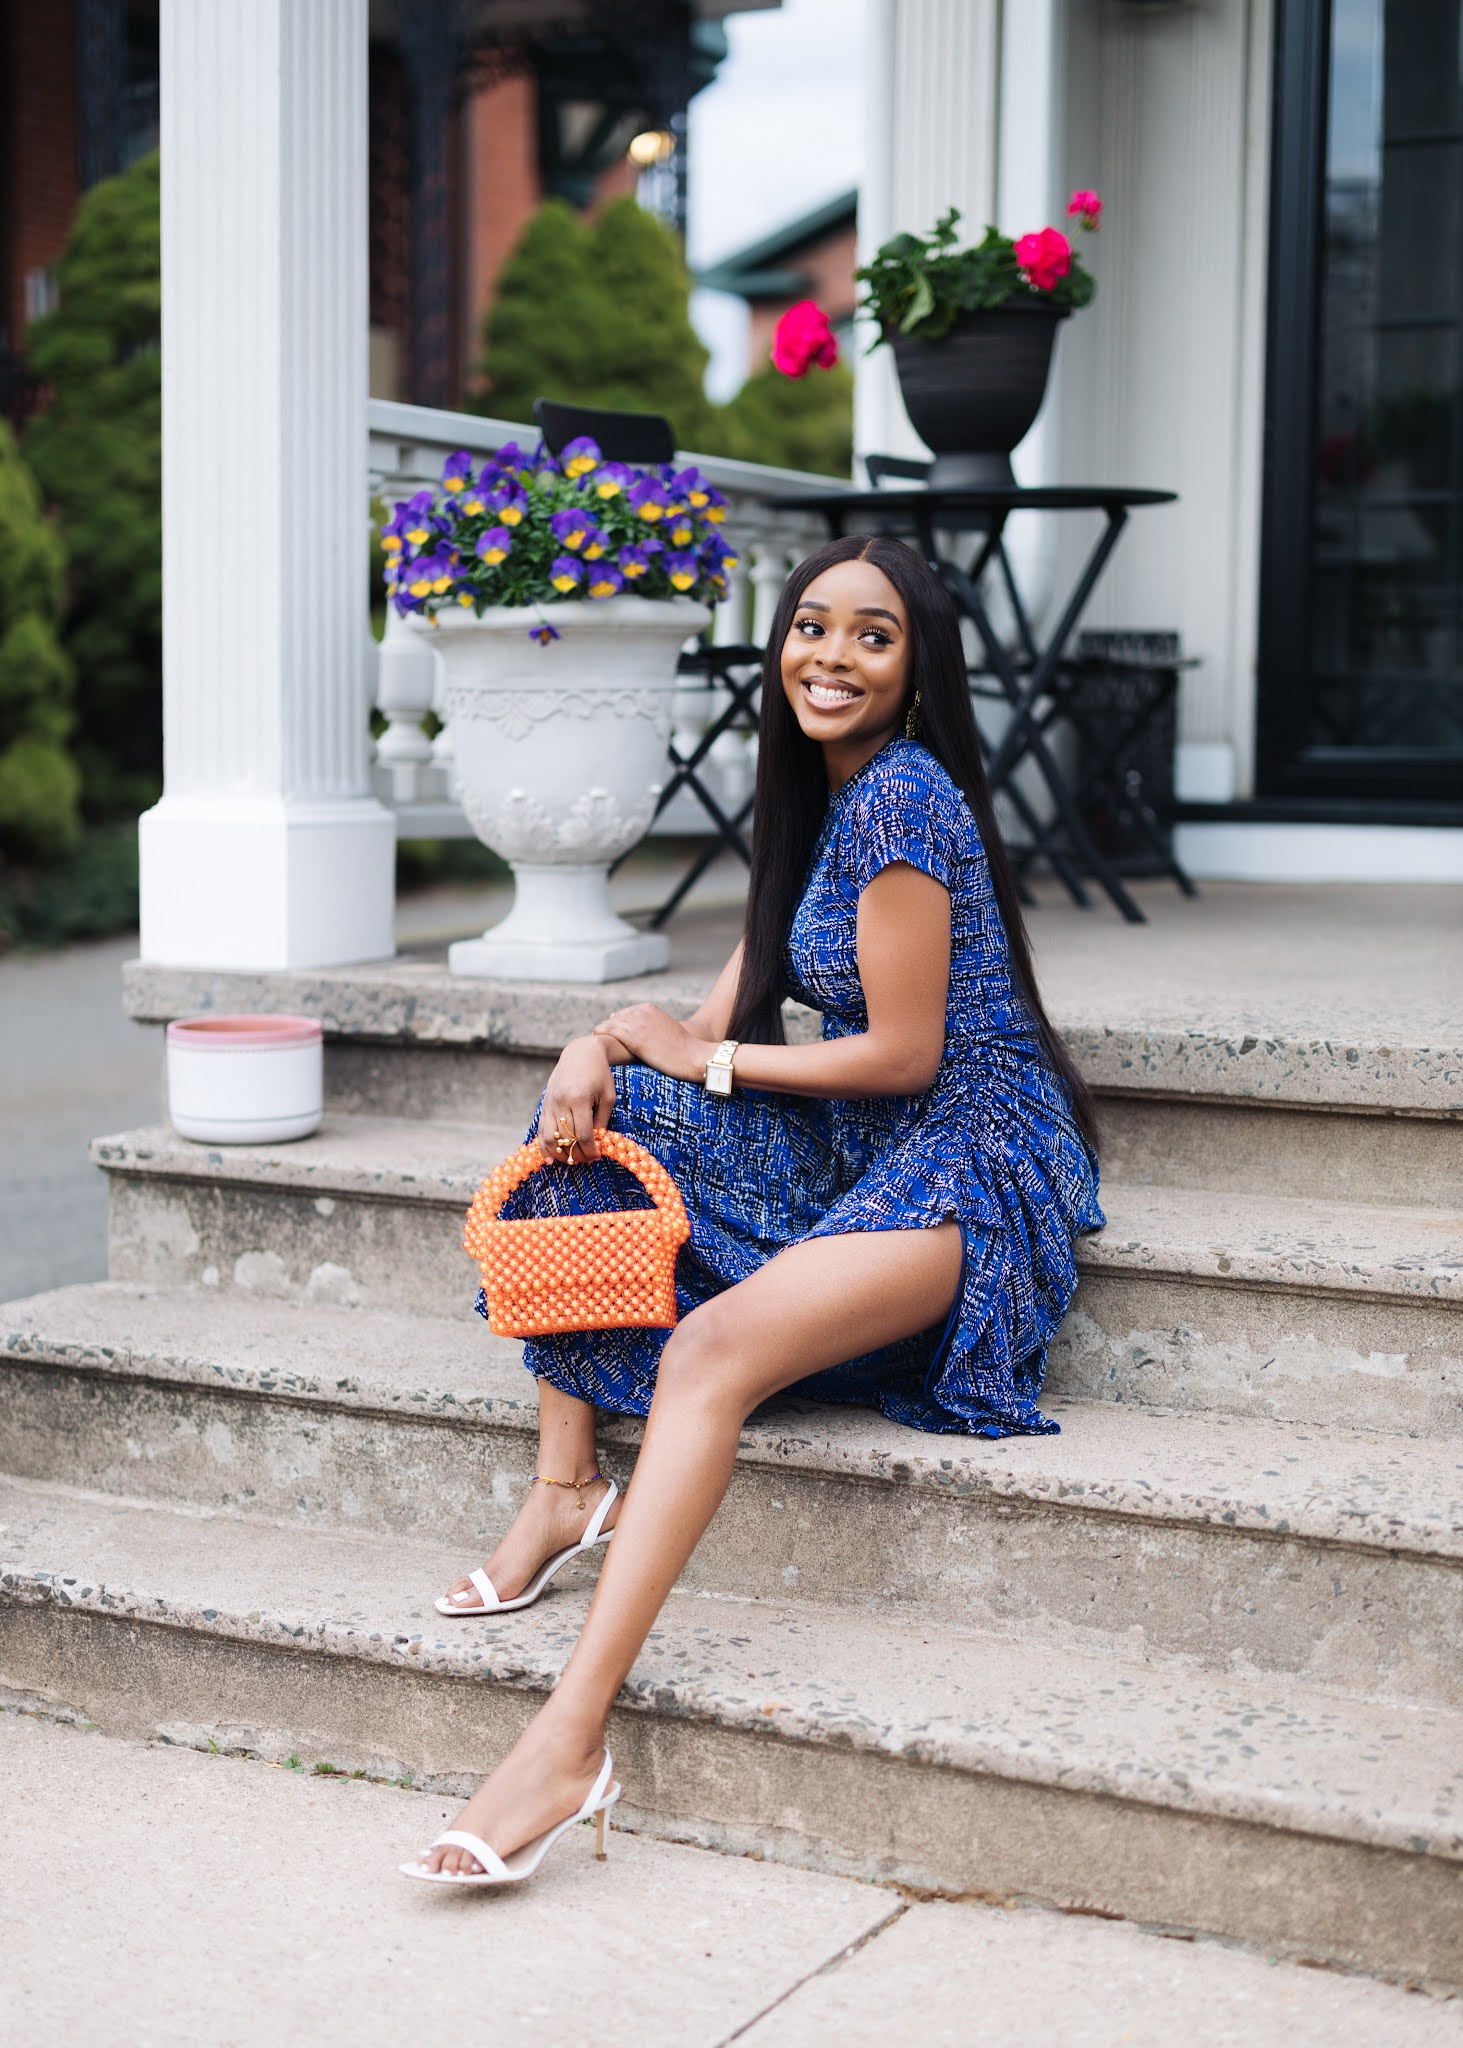 How to style a print dress for date night